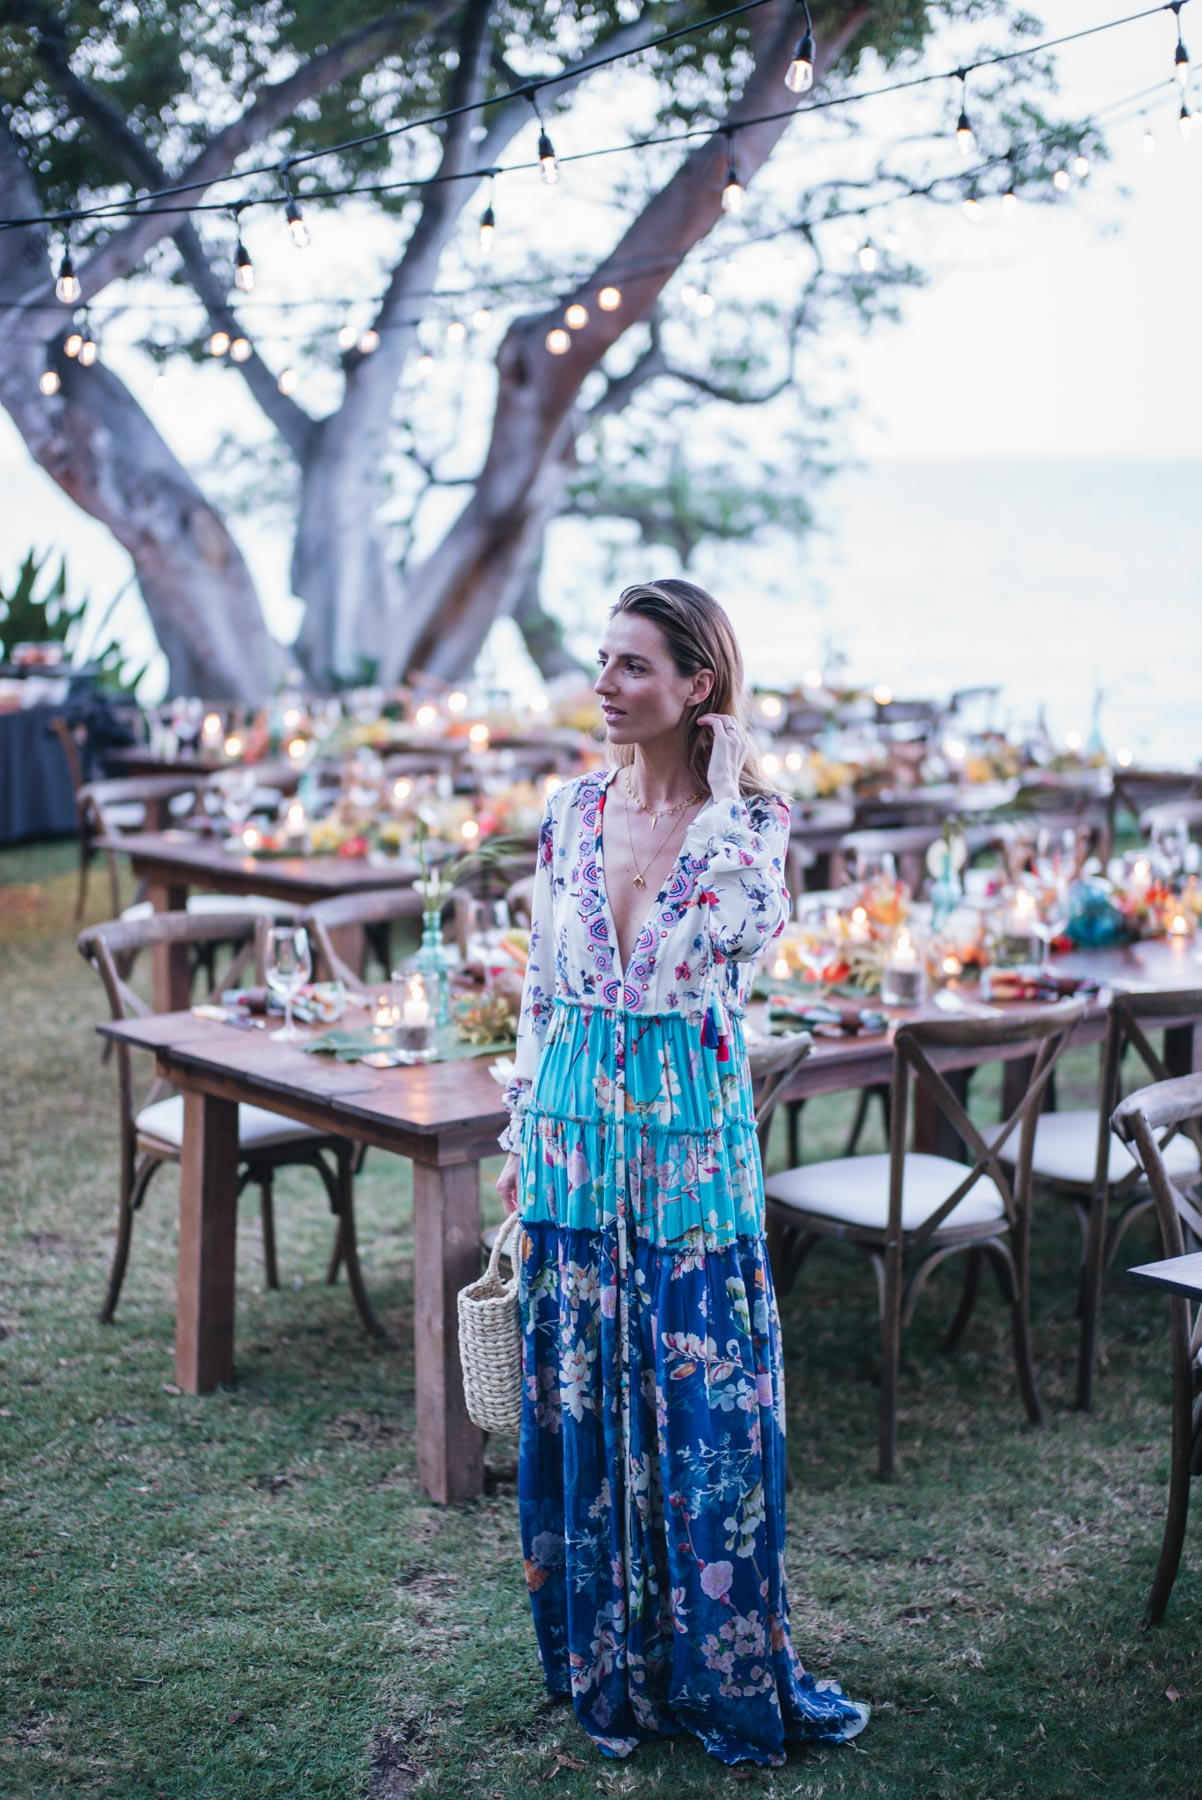 Jess Ann Kirby attends a tropic wedding in a Rococo Sand Maxi Dress